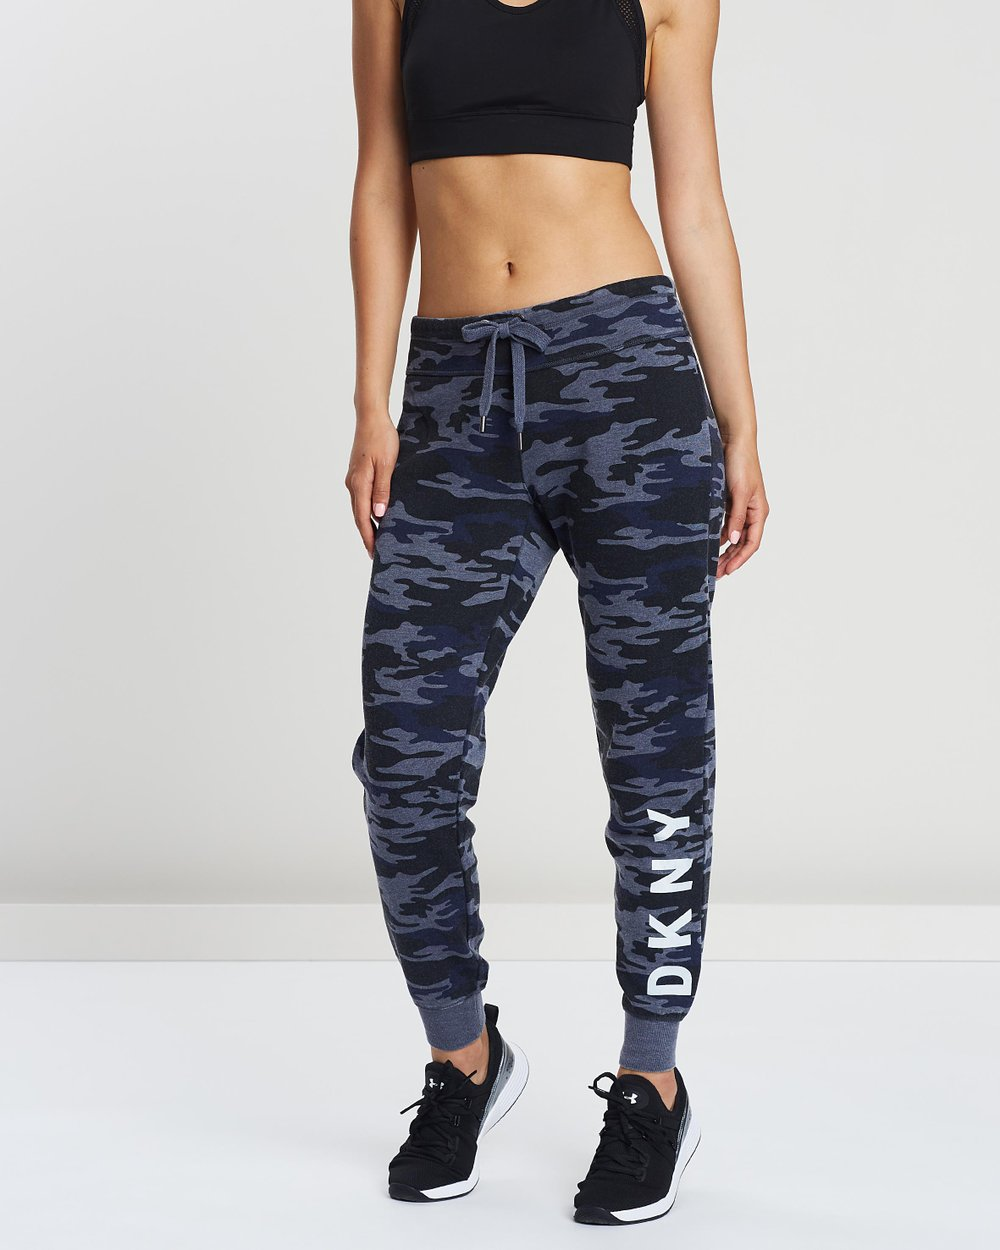 Camo Print Slim Fit Jogger Pants by DKNY Online  92b84a0ac27